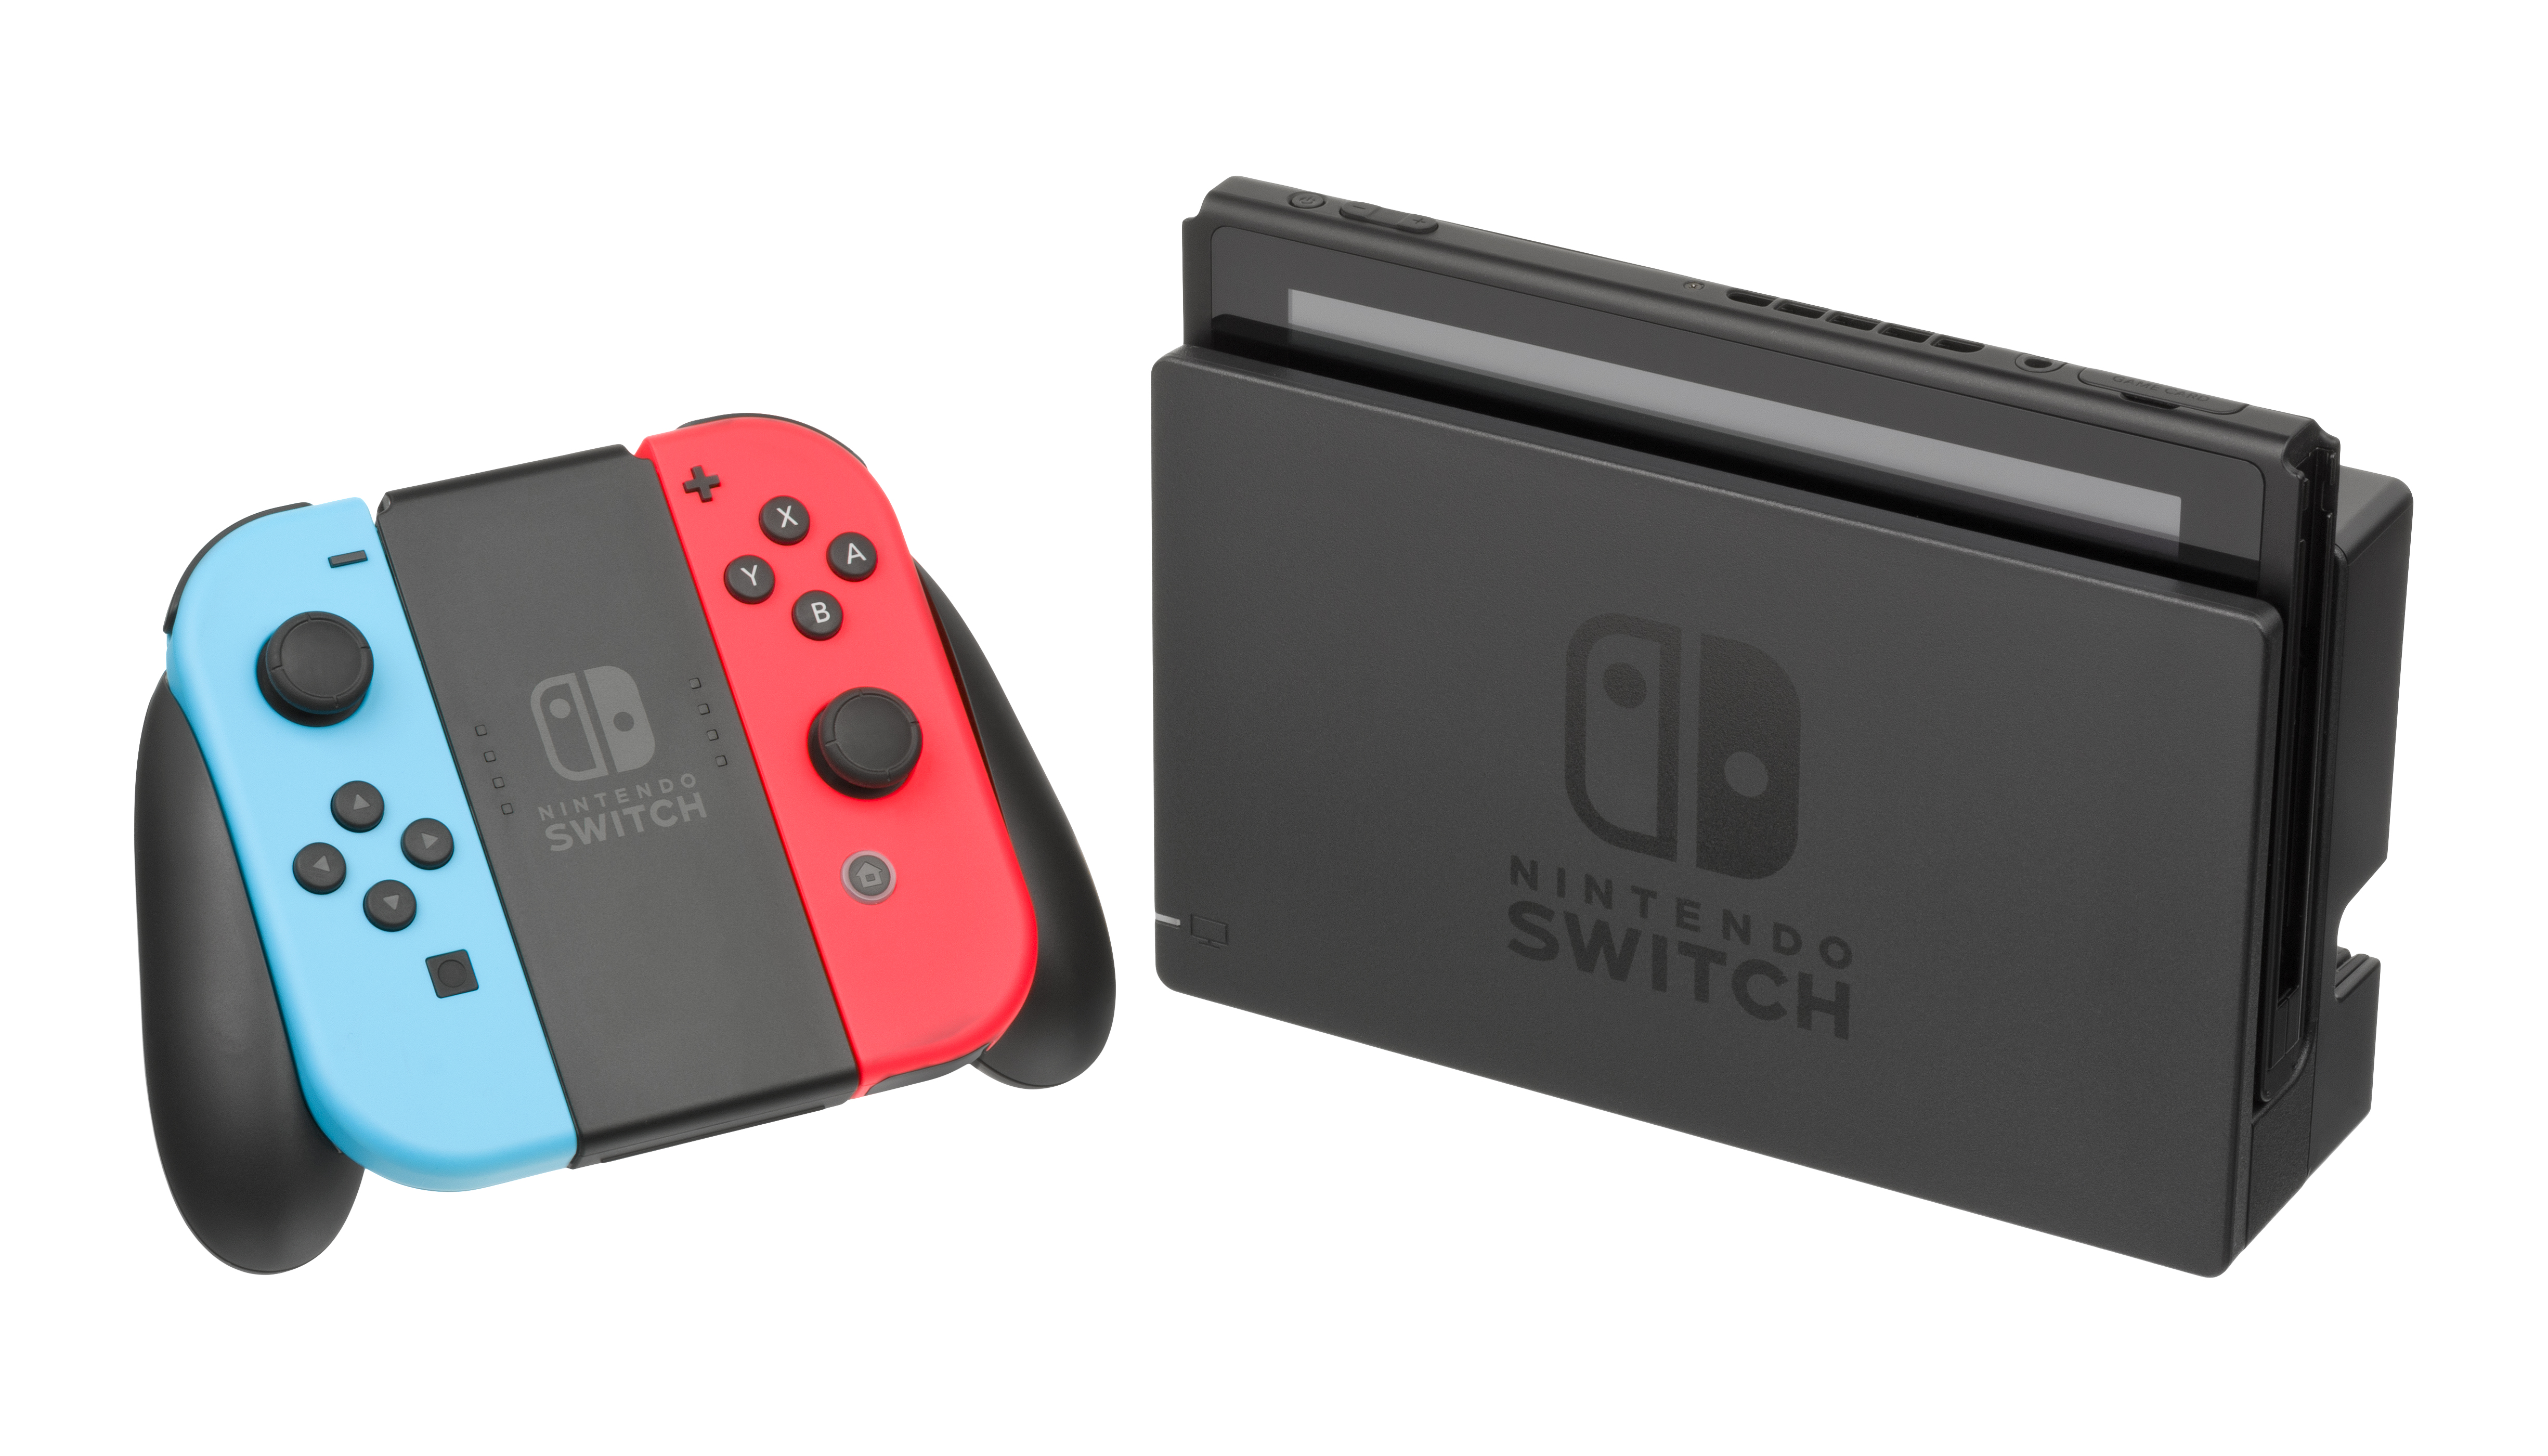 A cheaper Switch model is reportedly due later this year